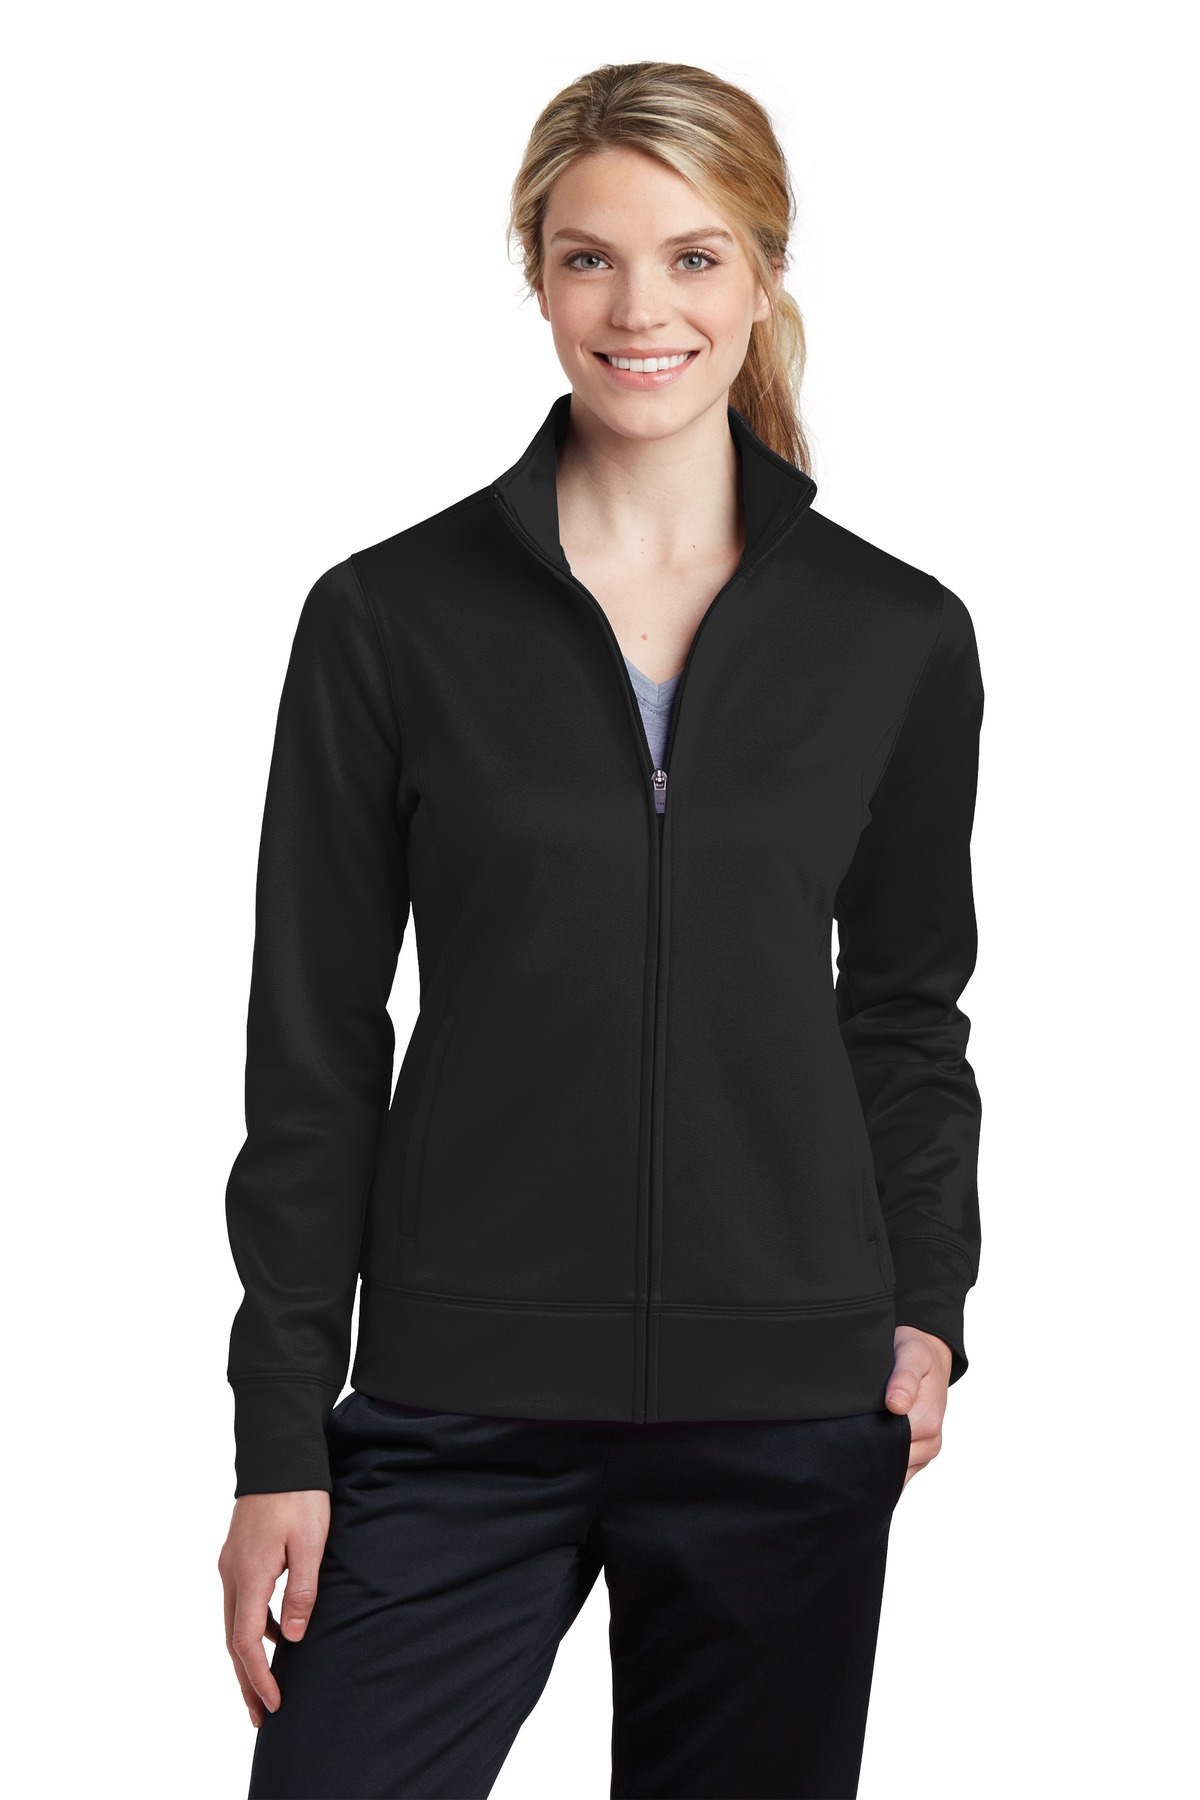 LST241 Sport-Tek® Ladies Sport-Wick® Fleece Full-Zip Jacket.-Sport-Tek